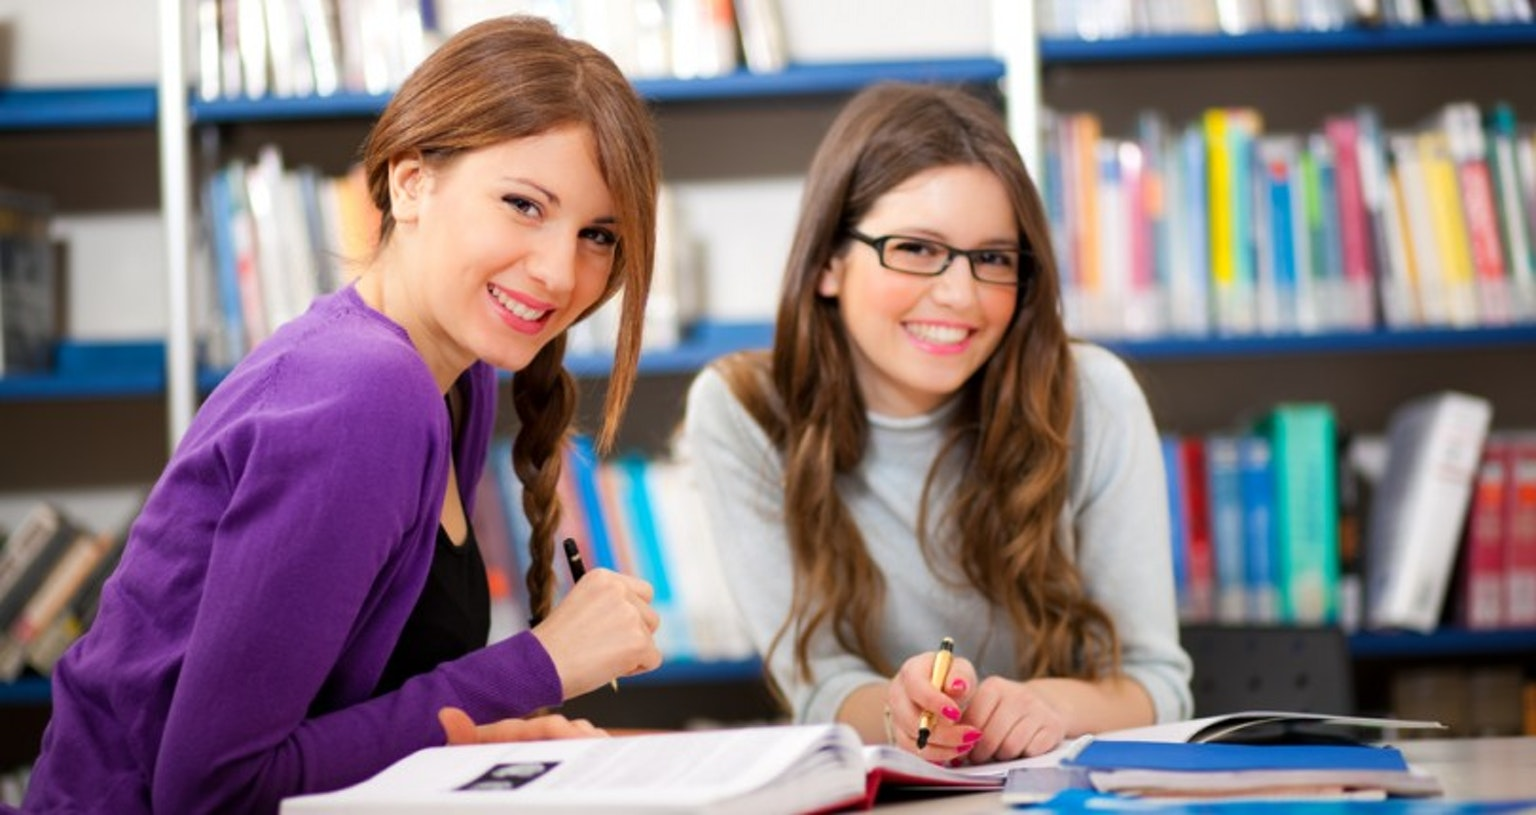 students smiling studying in library